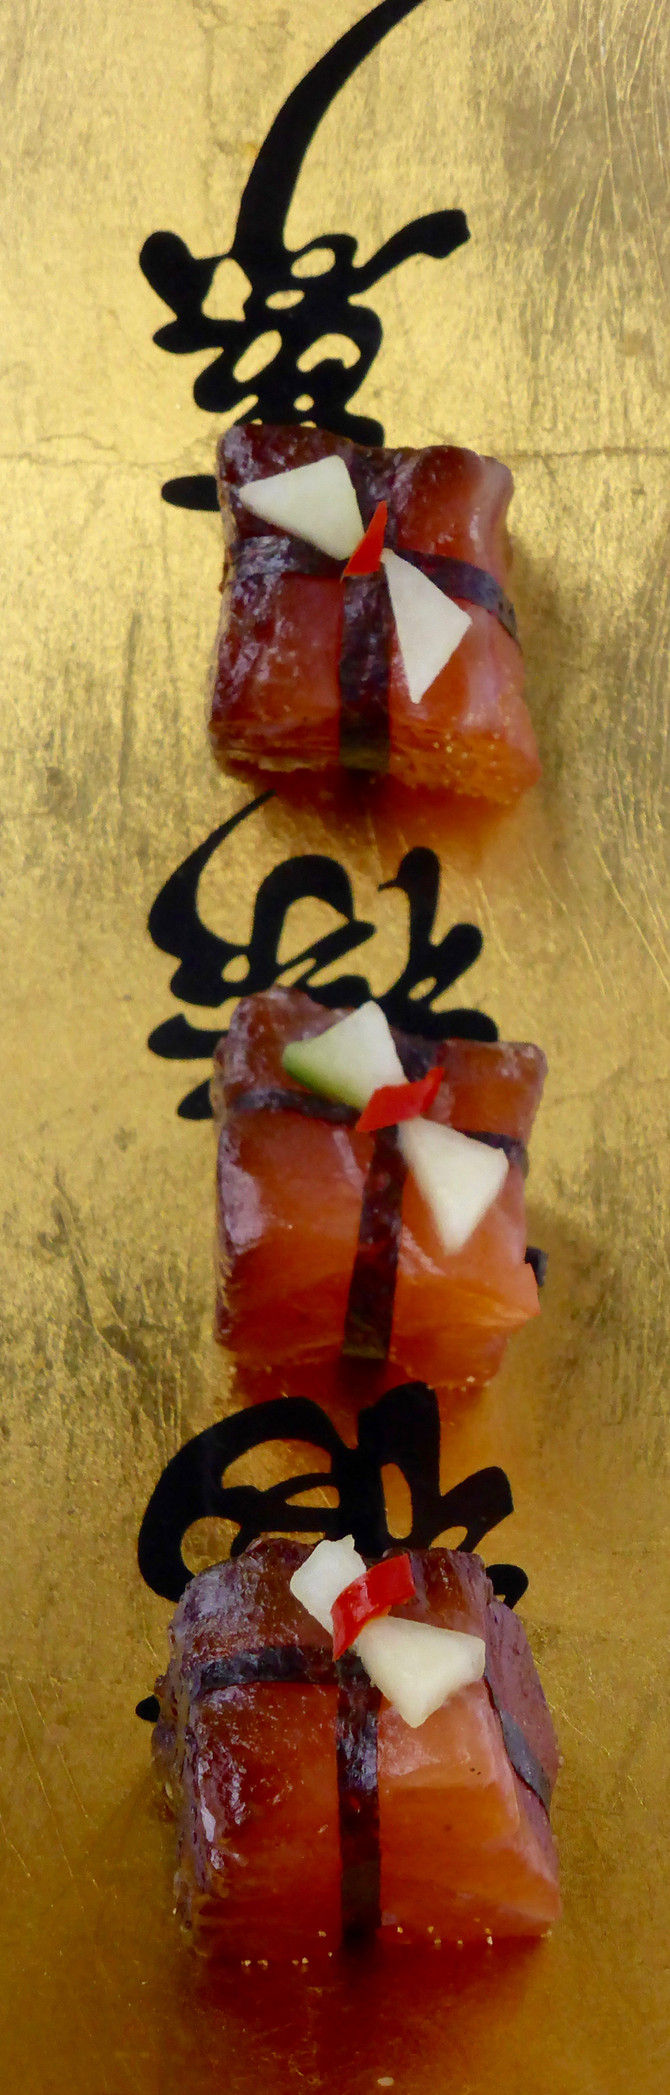 Cured salmon presents